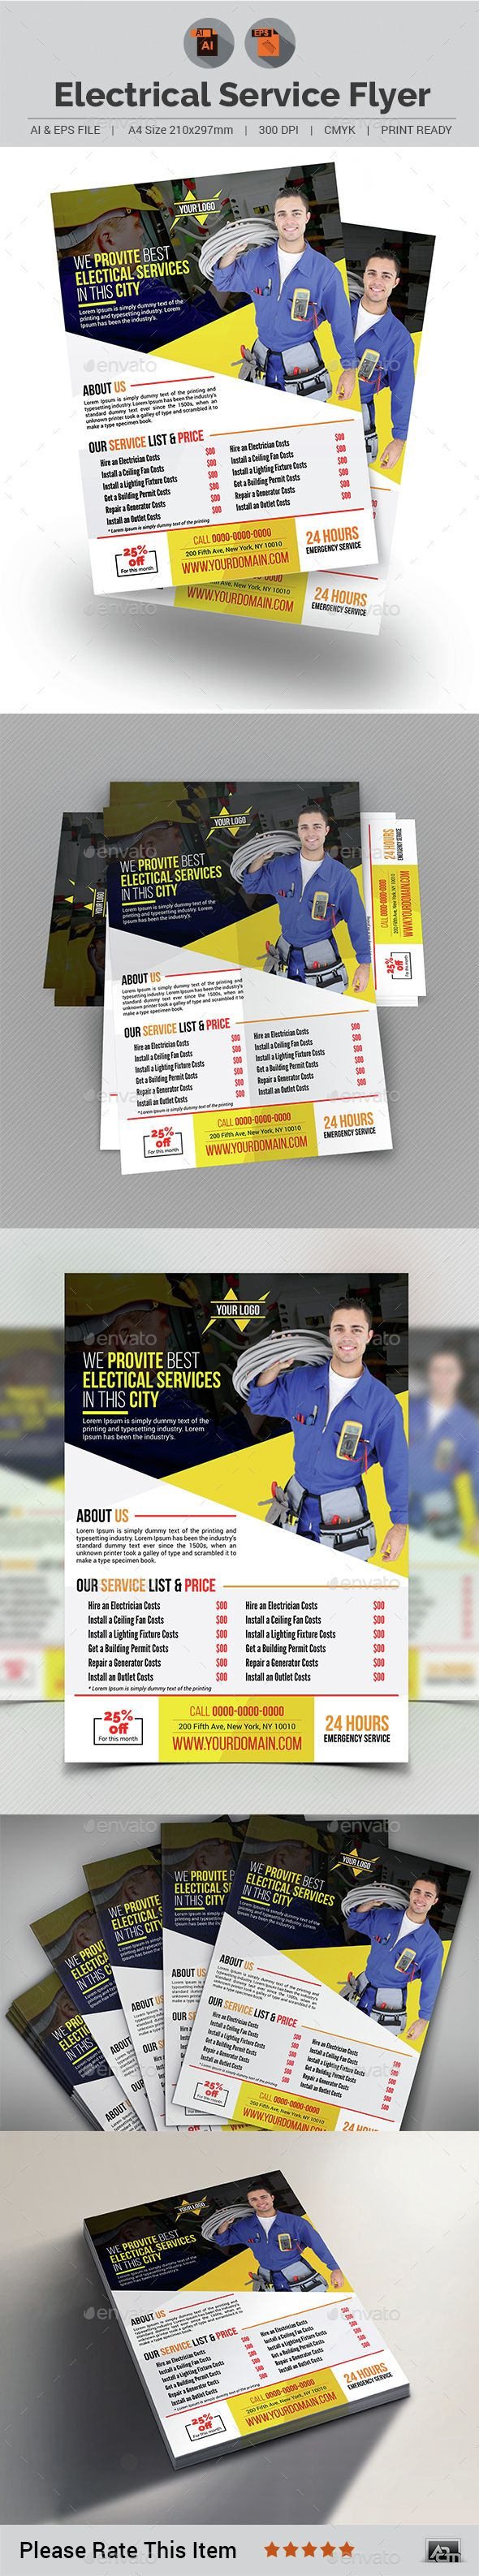 Electrical Service Flyer Template